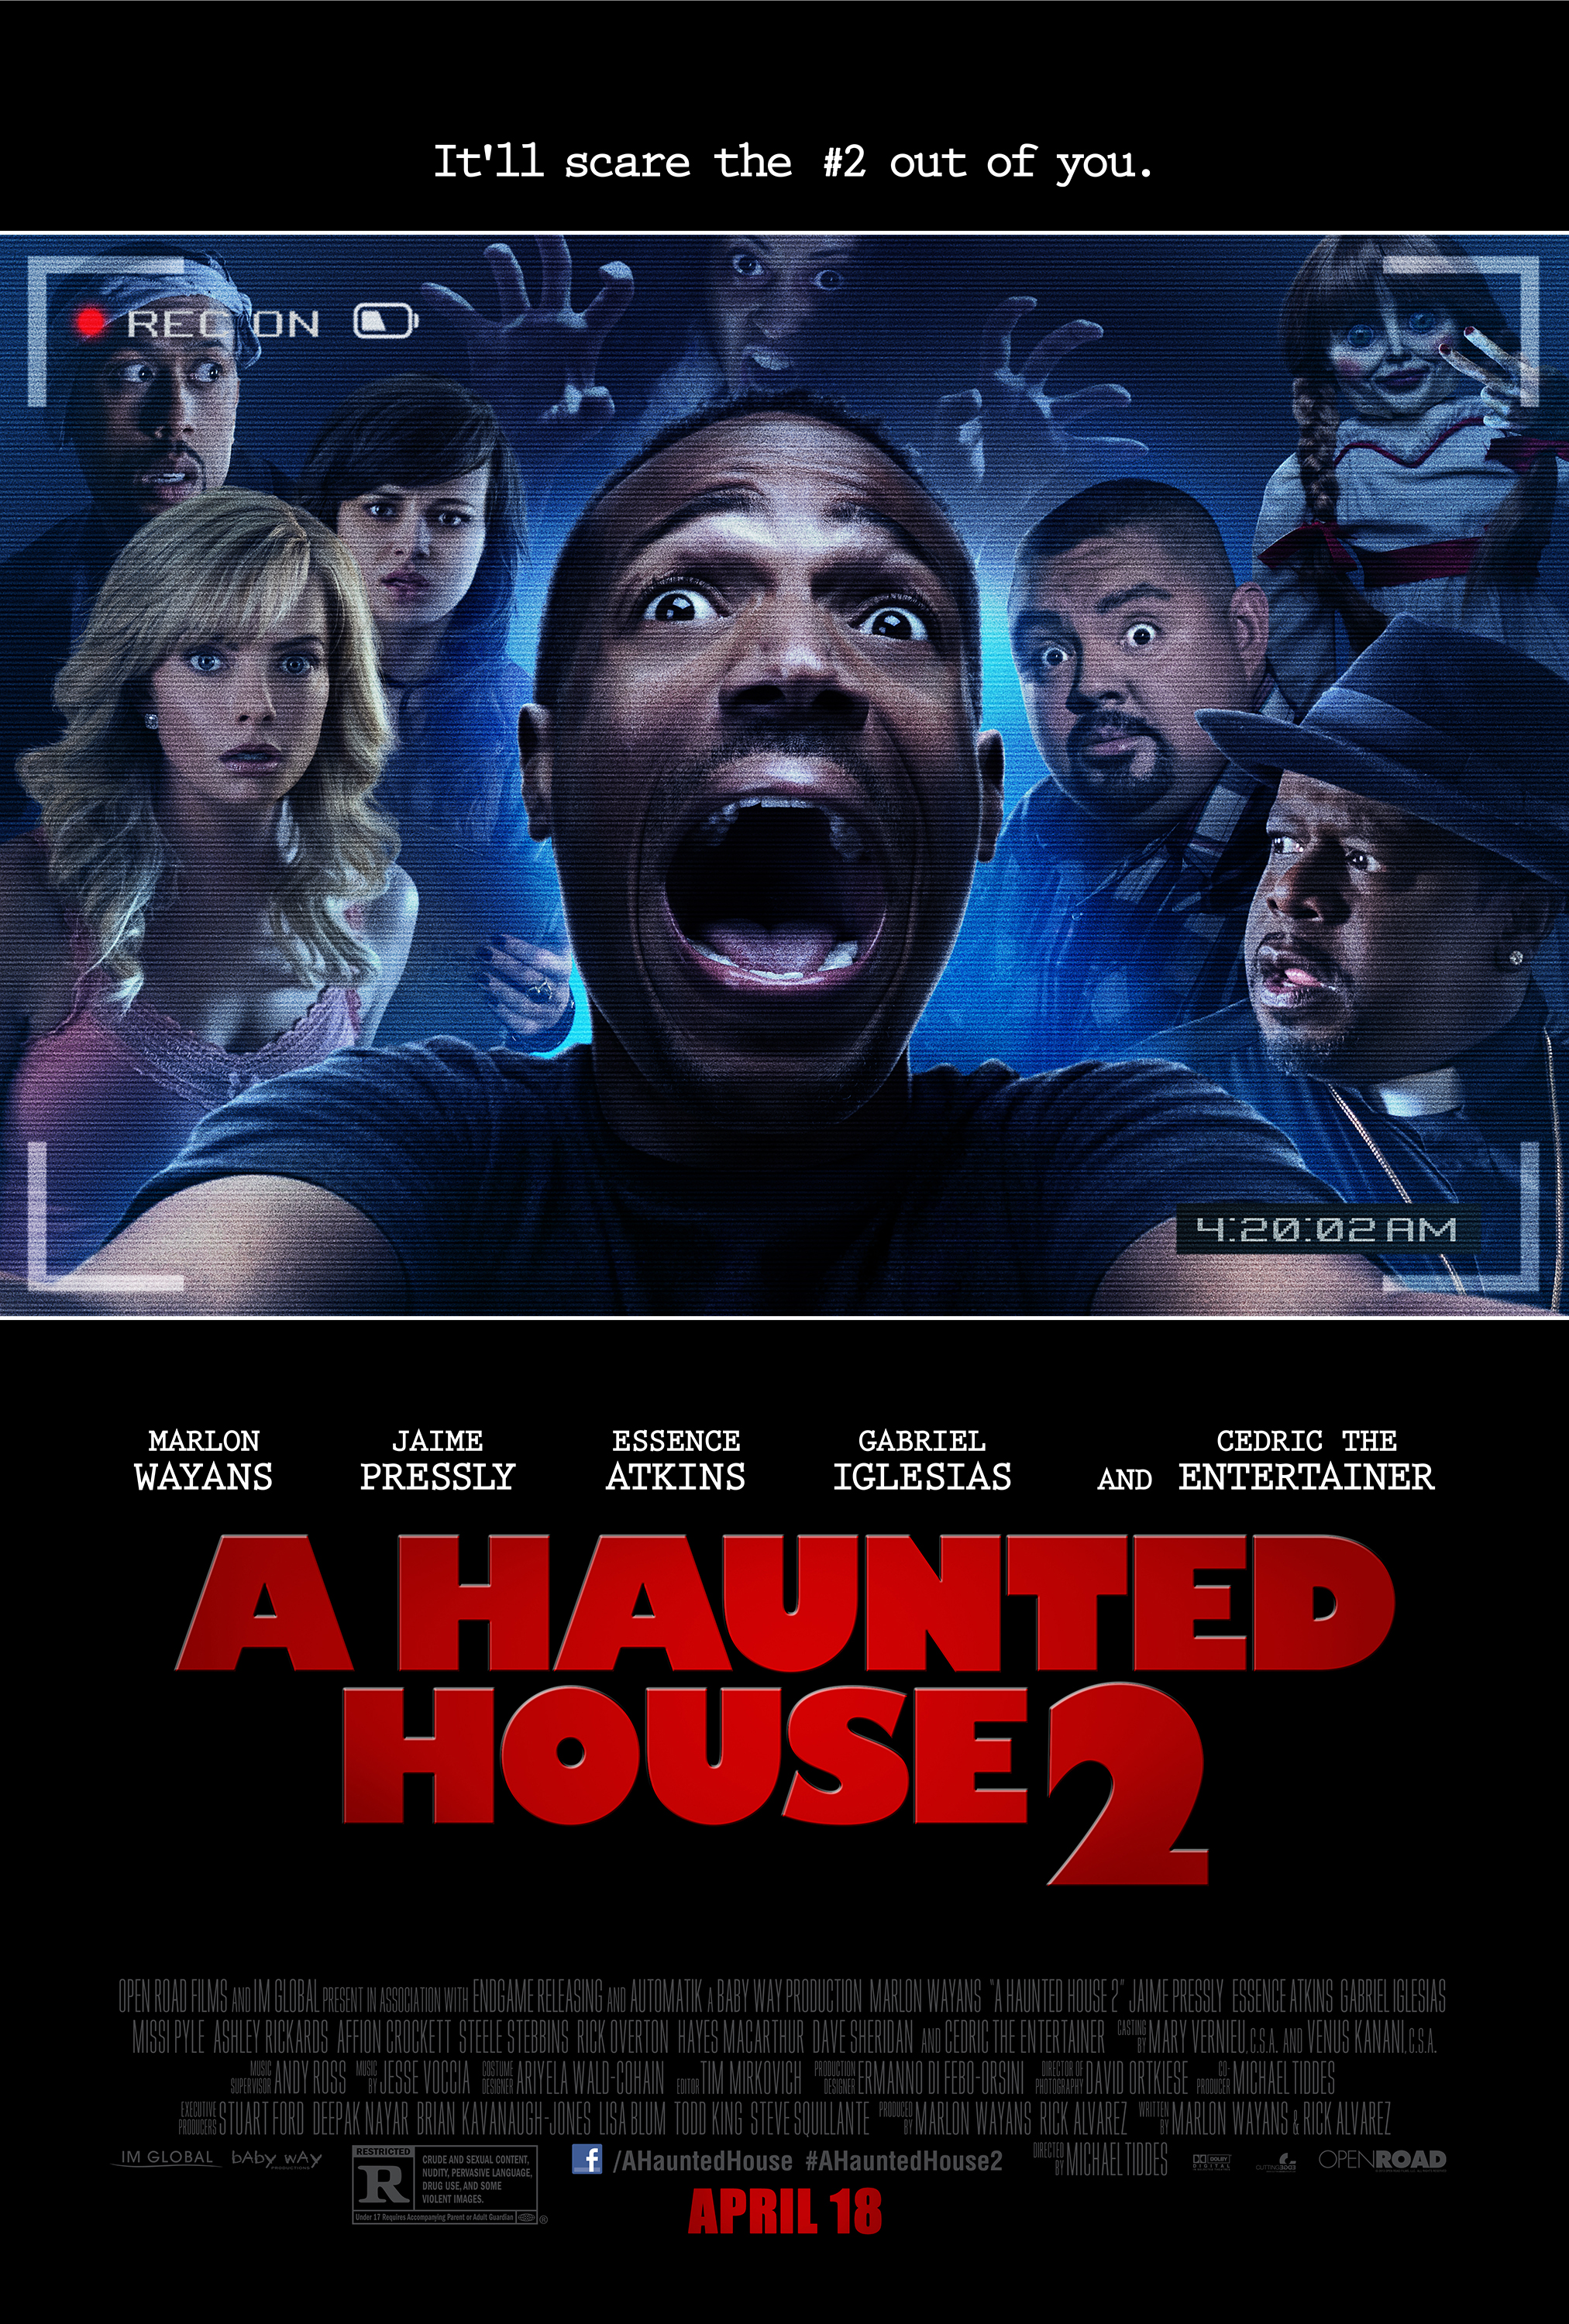 A HAUNTED HOUSE 2 - Poster